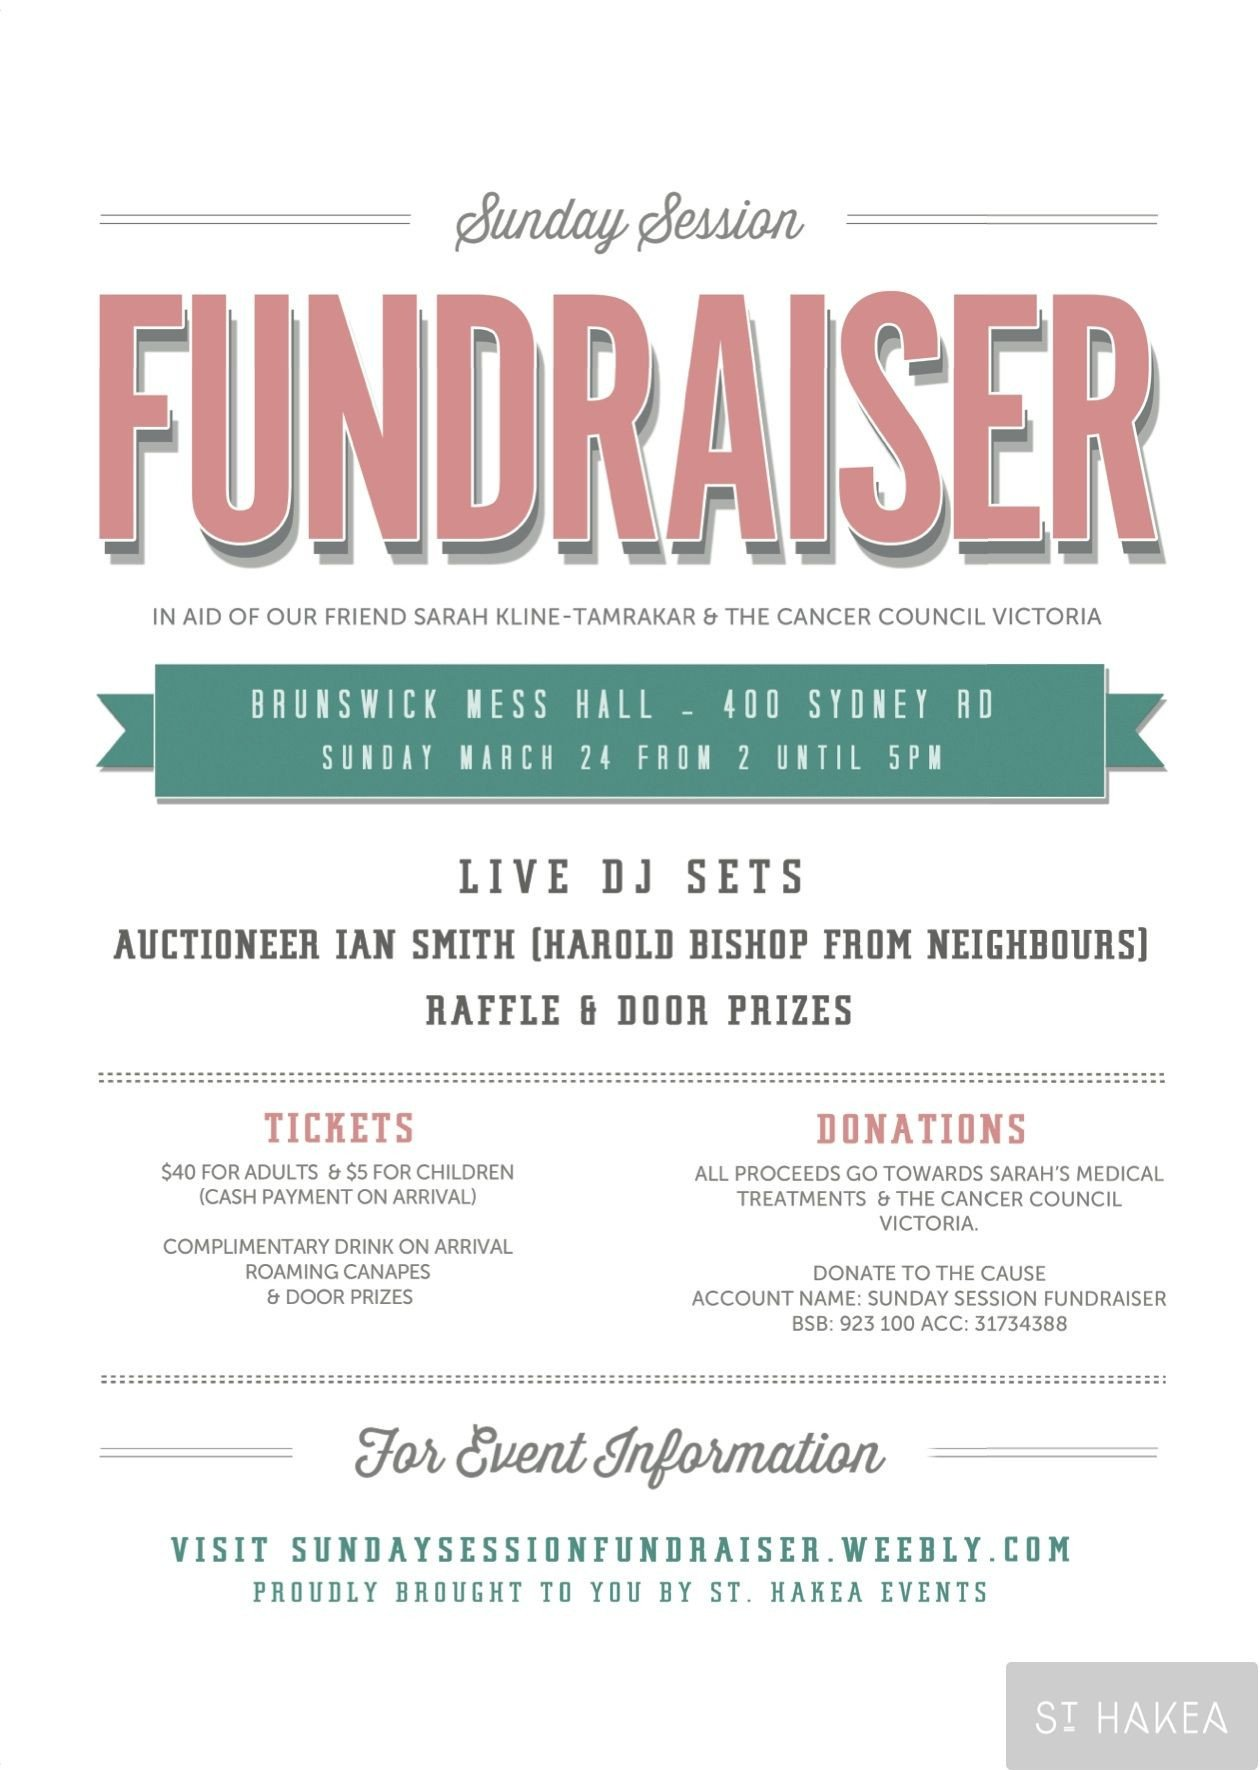 Free Fundraiser Flyer Templates Sunday Session Fundraiser event Flyer Proudly Bought to